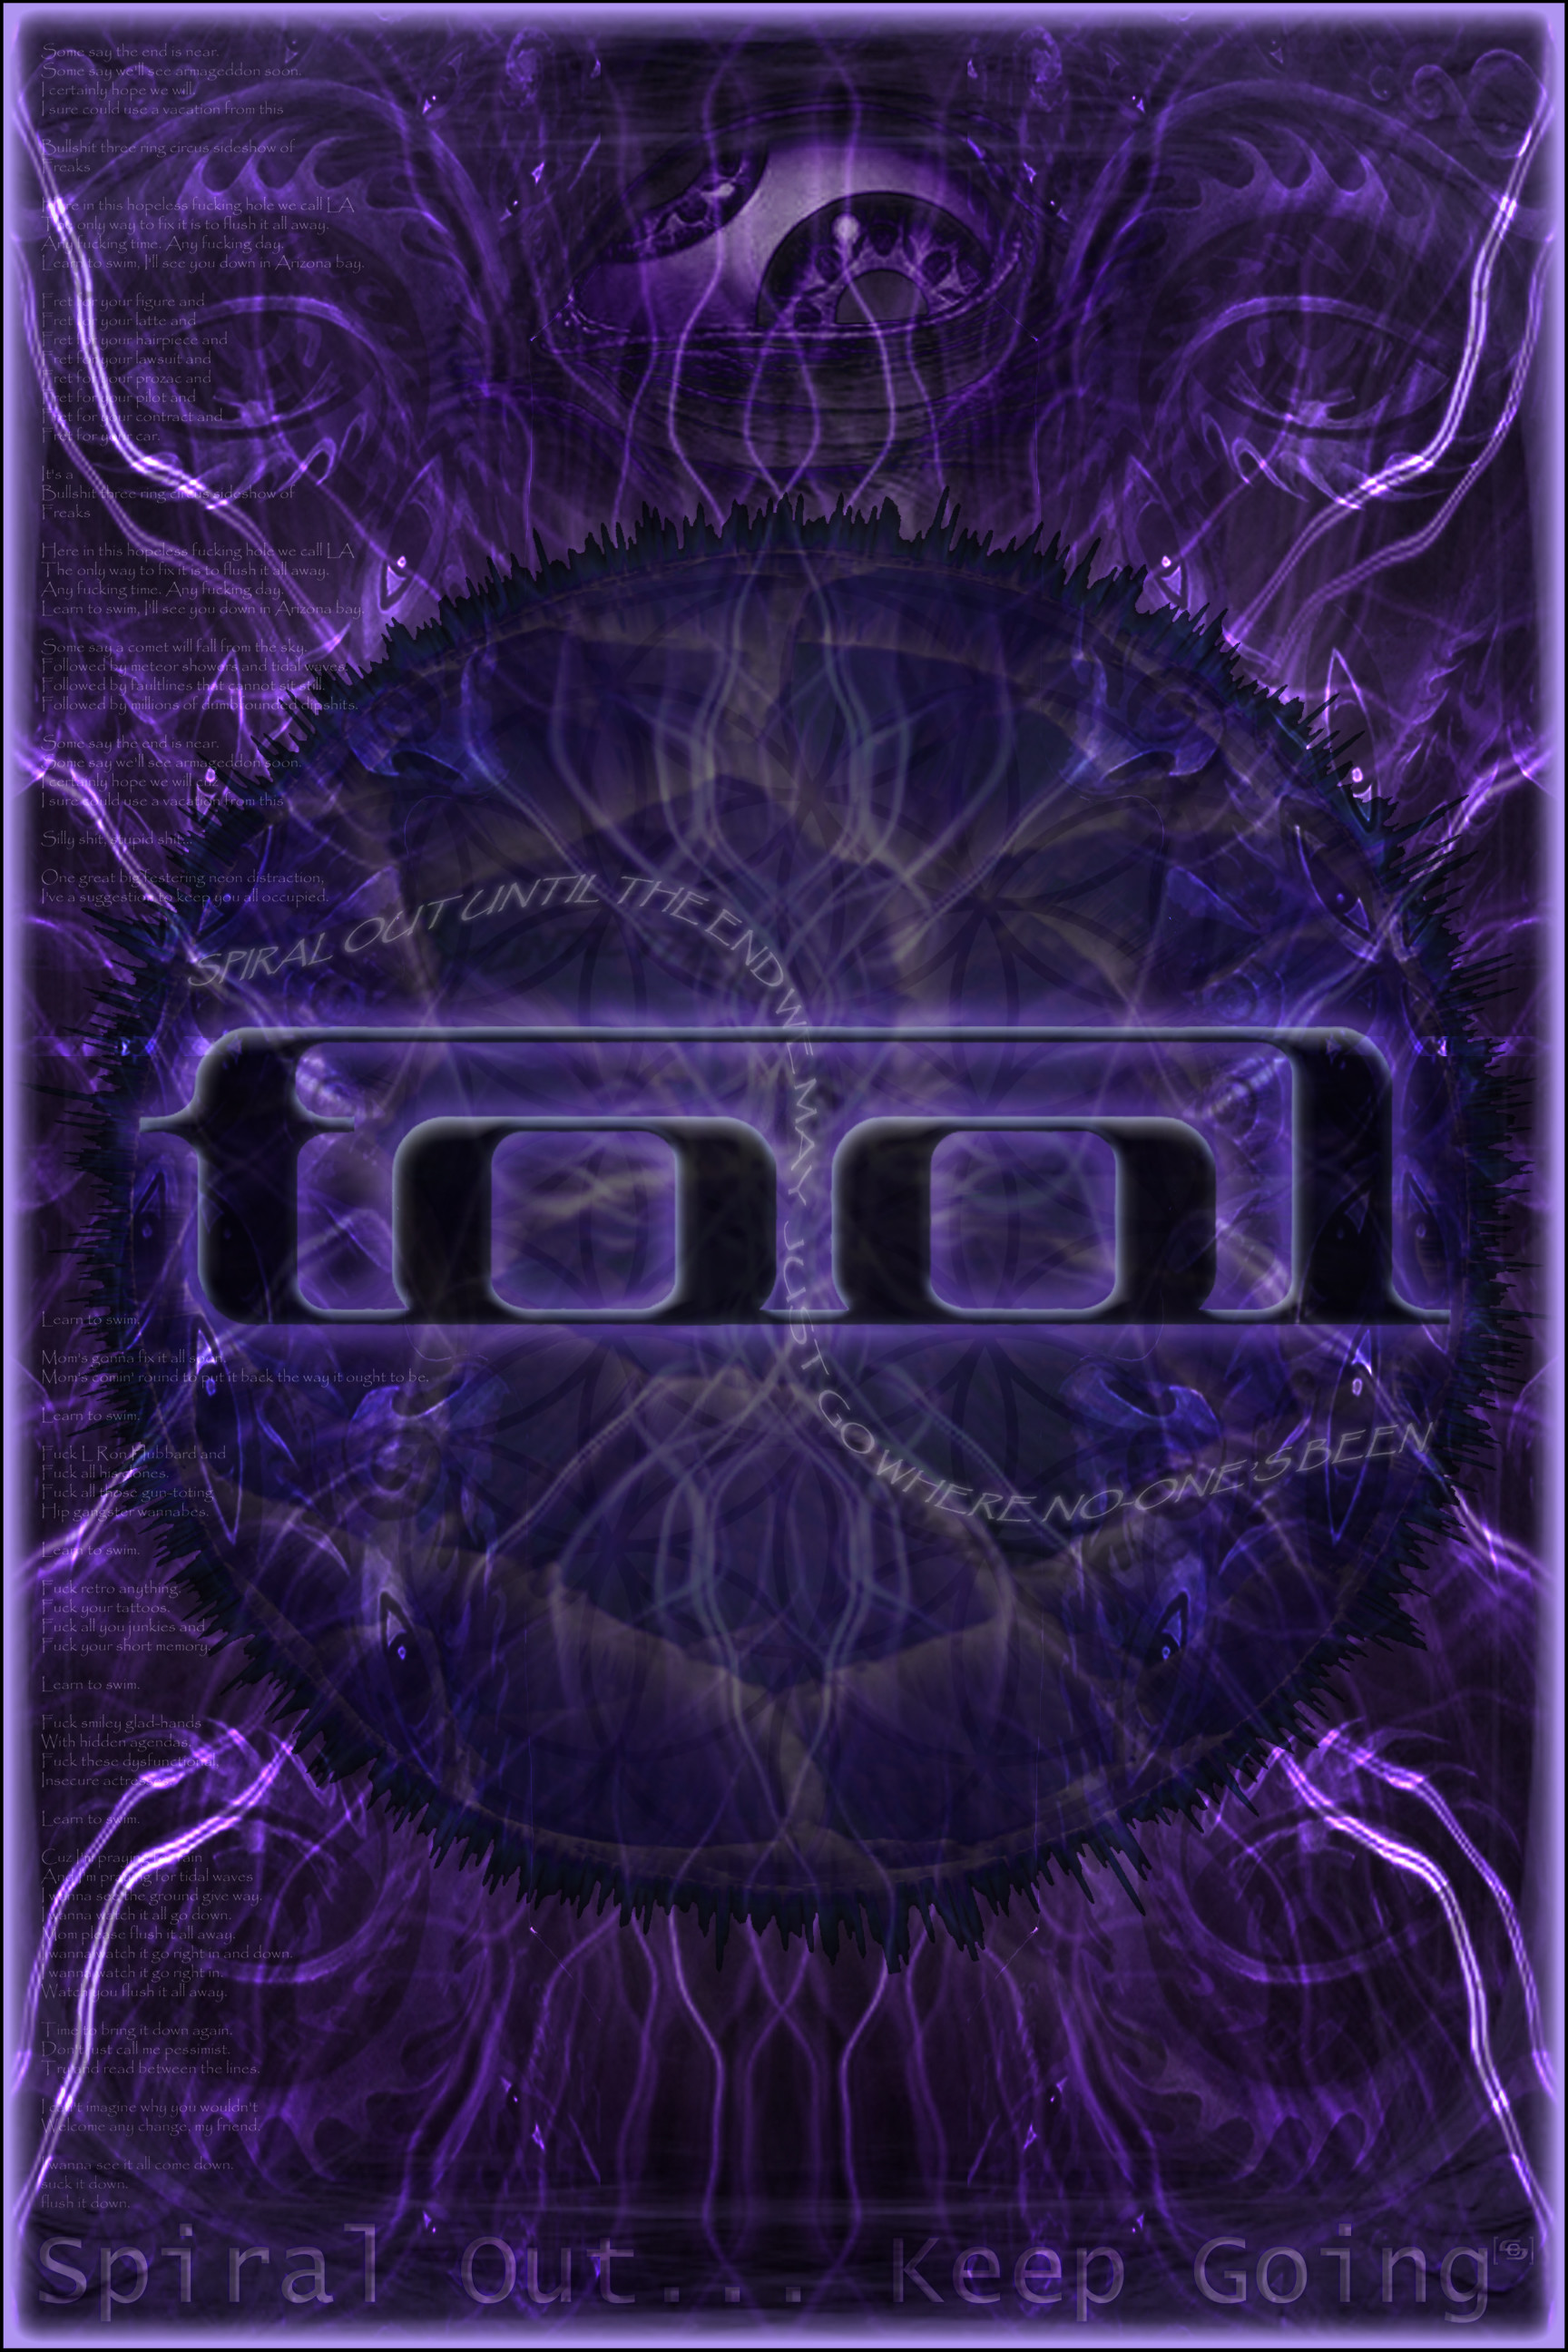 Tool Band Wallpaper HD 54 Images